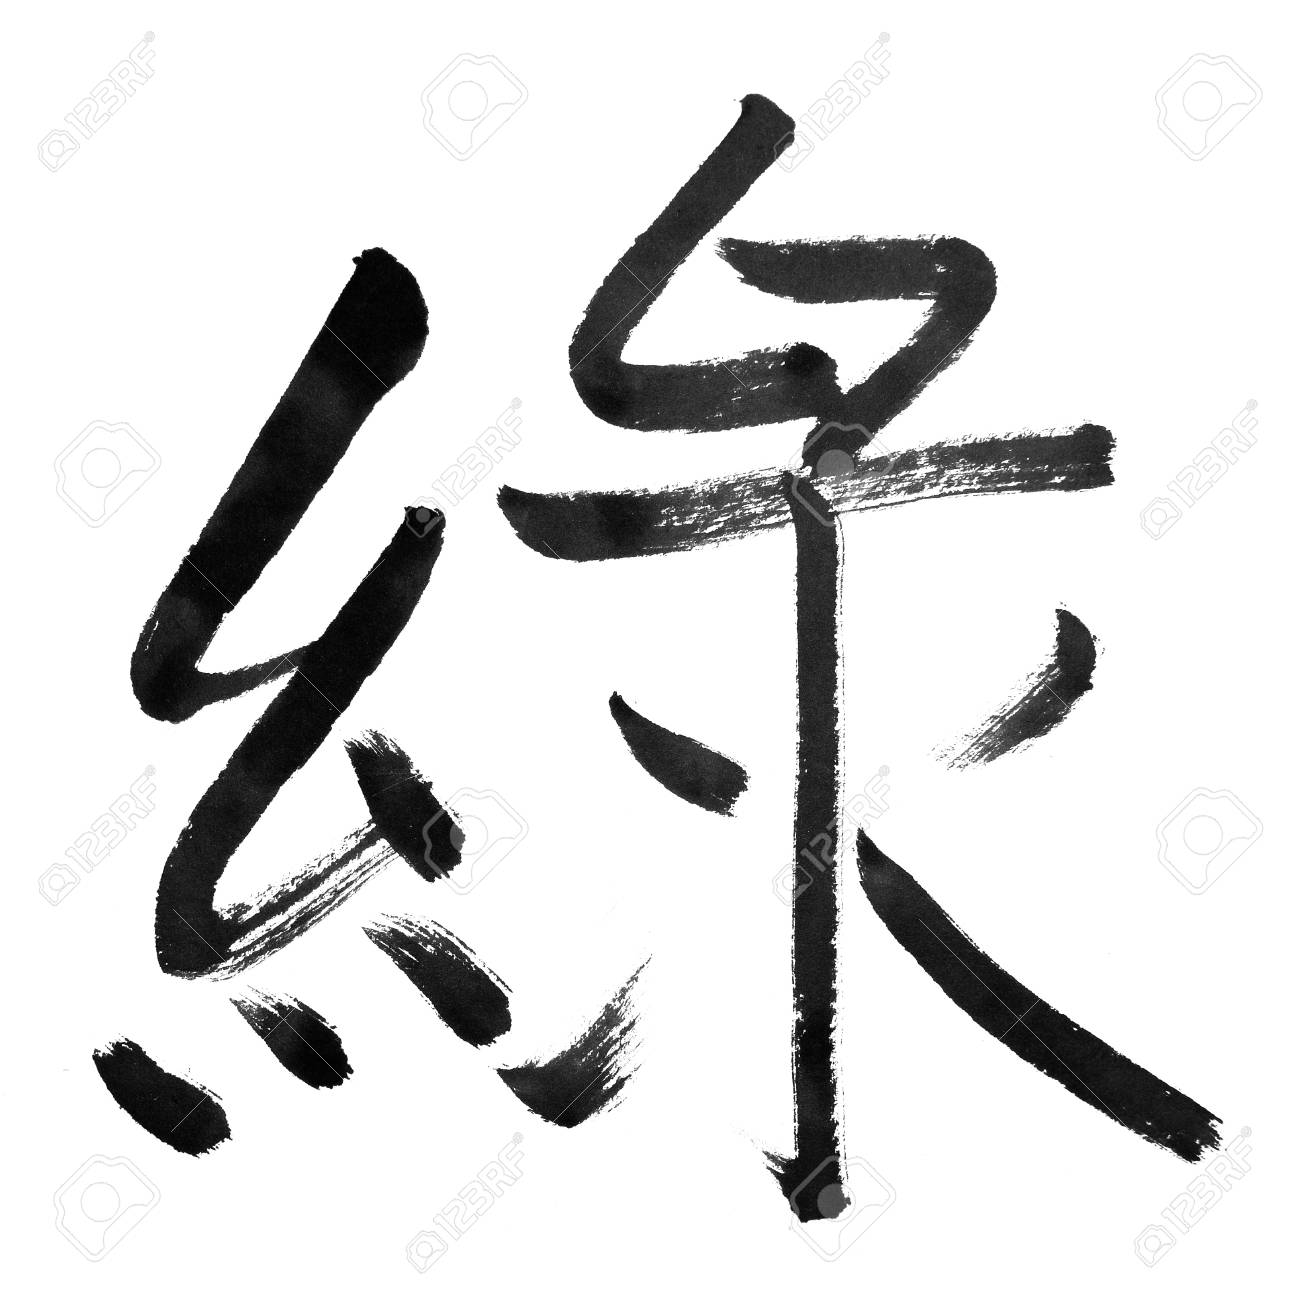 green, traditional chinese calligraphy art isolated on white background. Stock Photo - 9898636